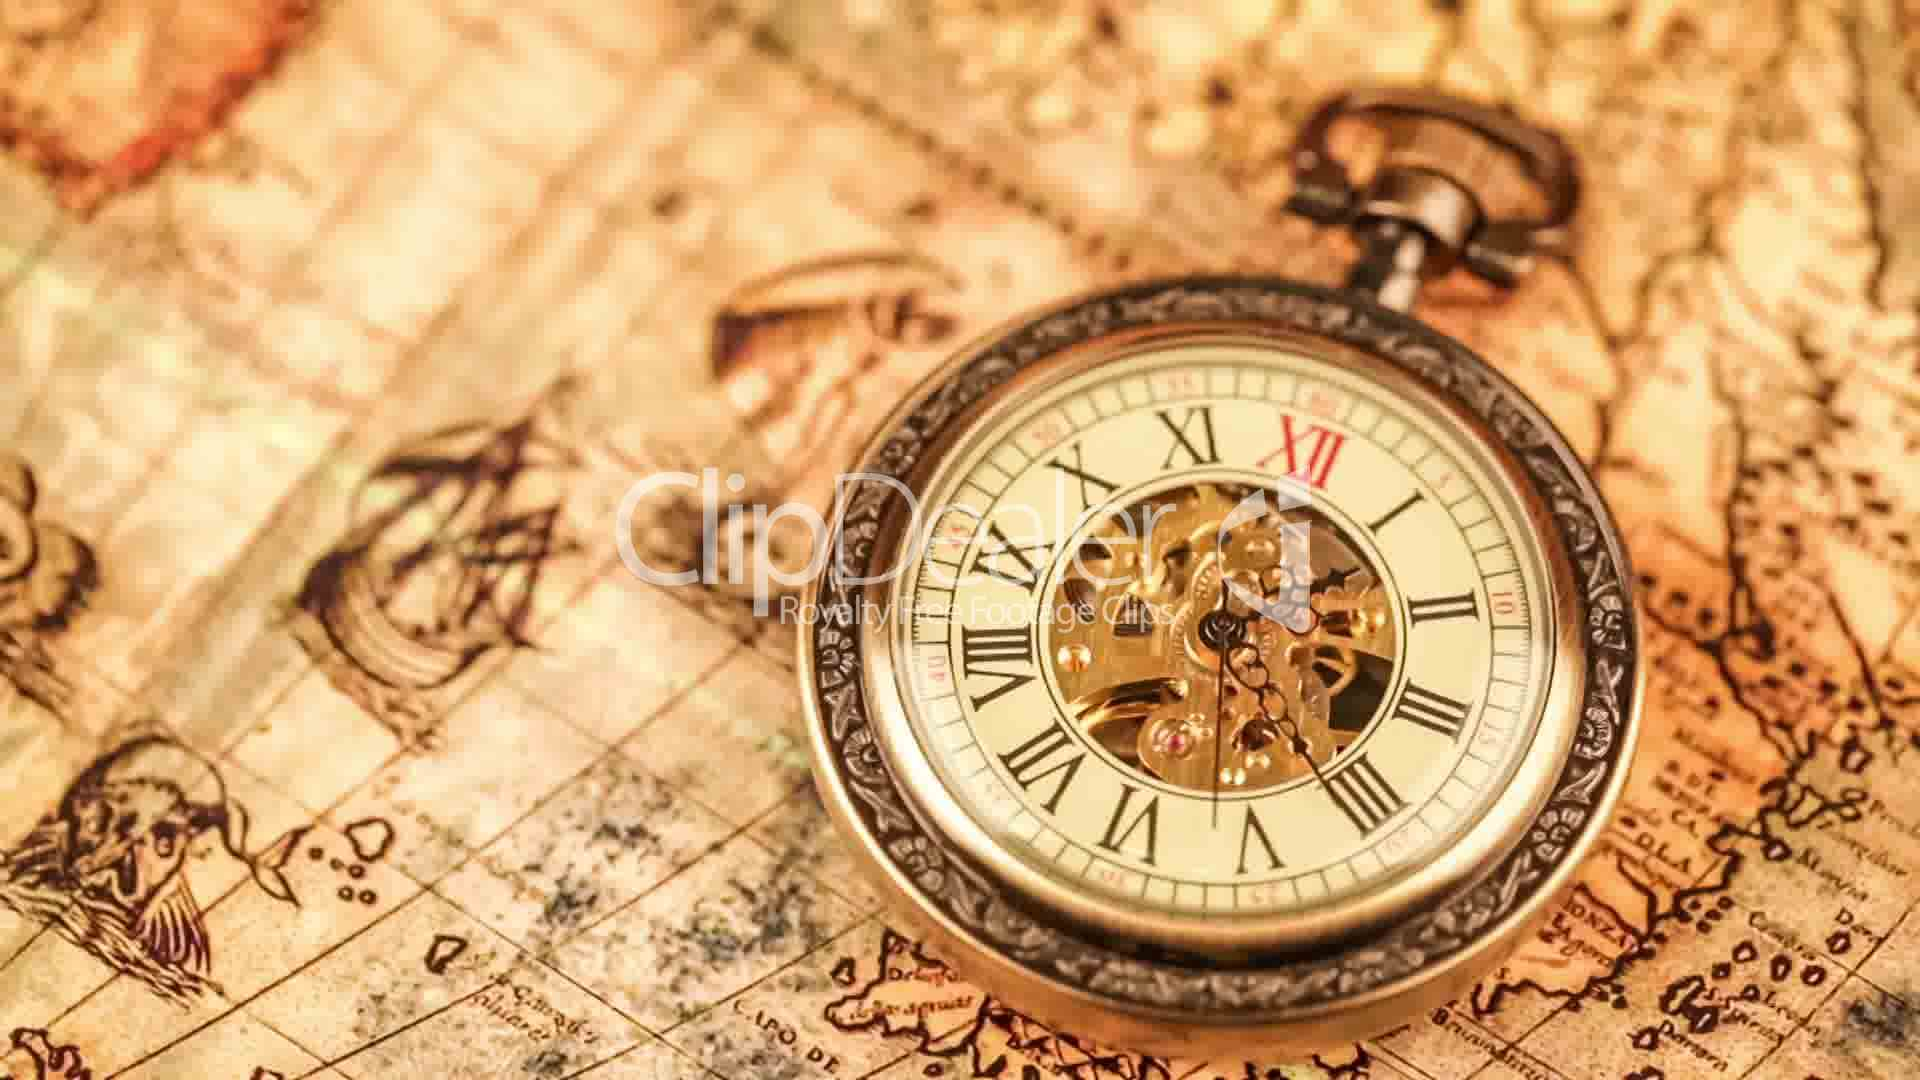 Vintage antique pocket watch on ancient world map in 1565 vdeos clips gumiabroncs Gallery